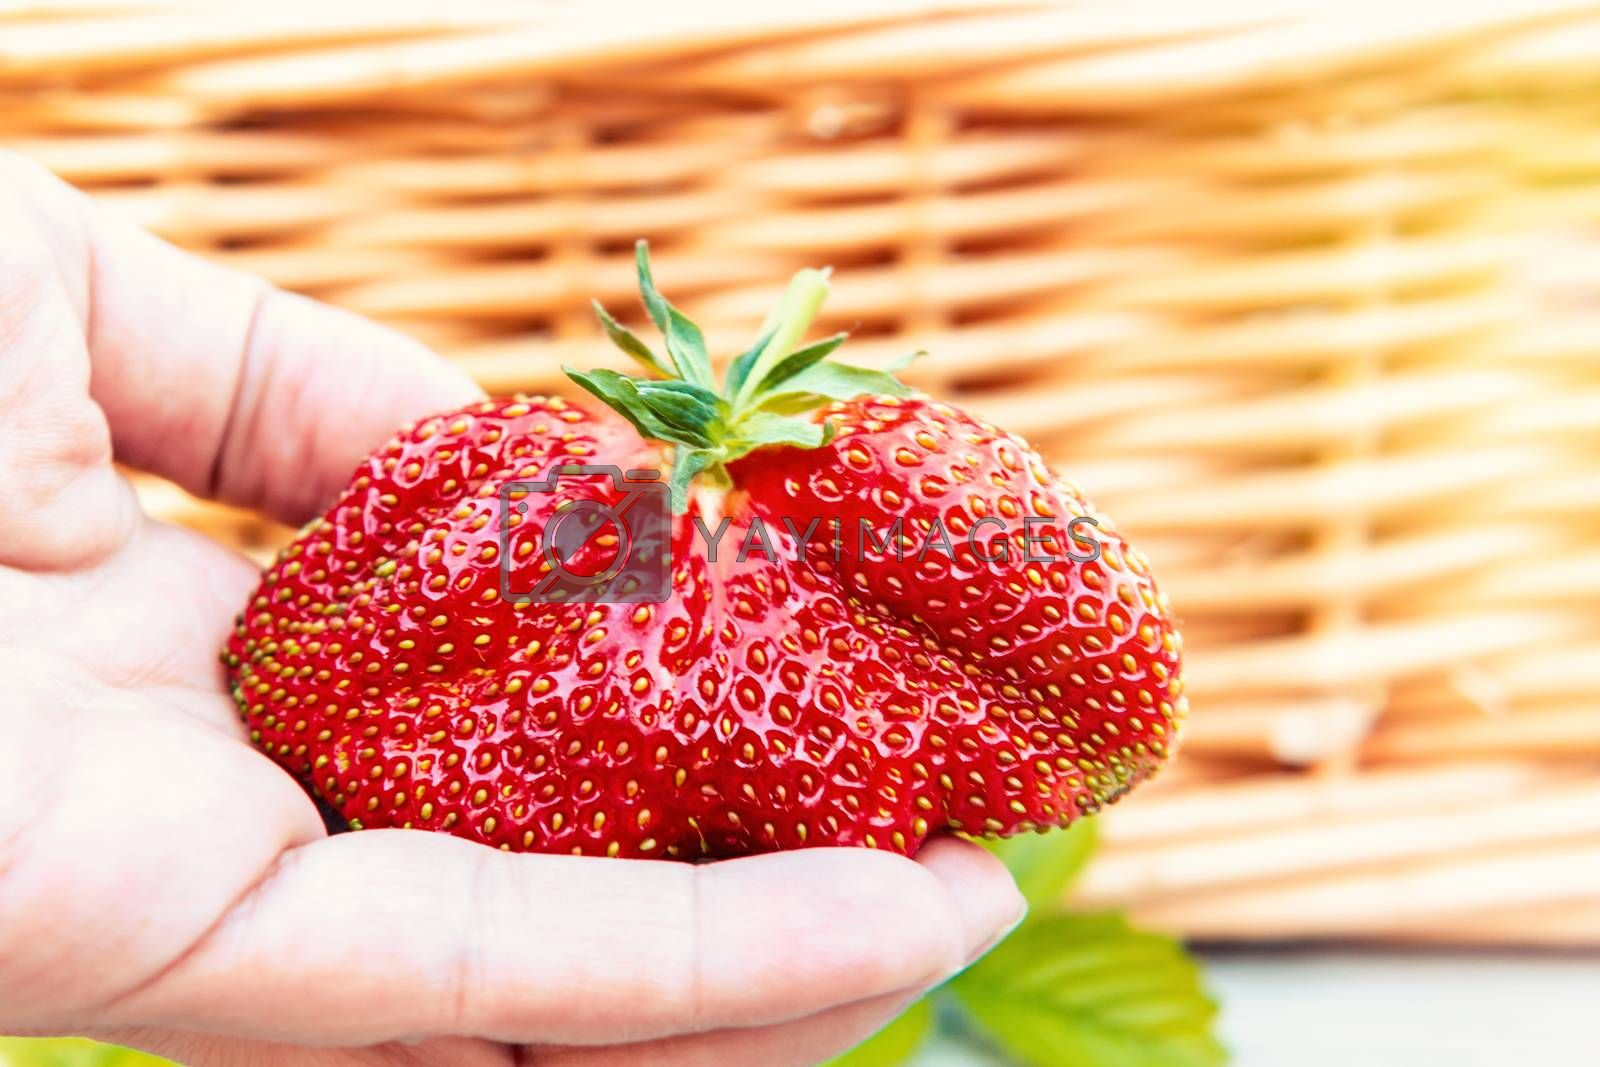 Huge strawberries in a female hand on the background of a wicker basket by galsand